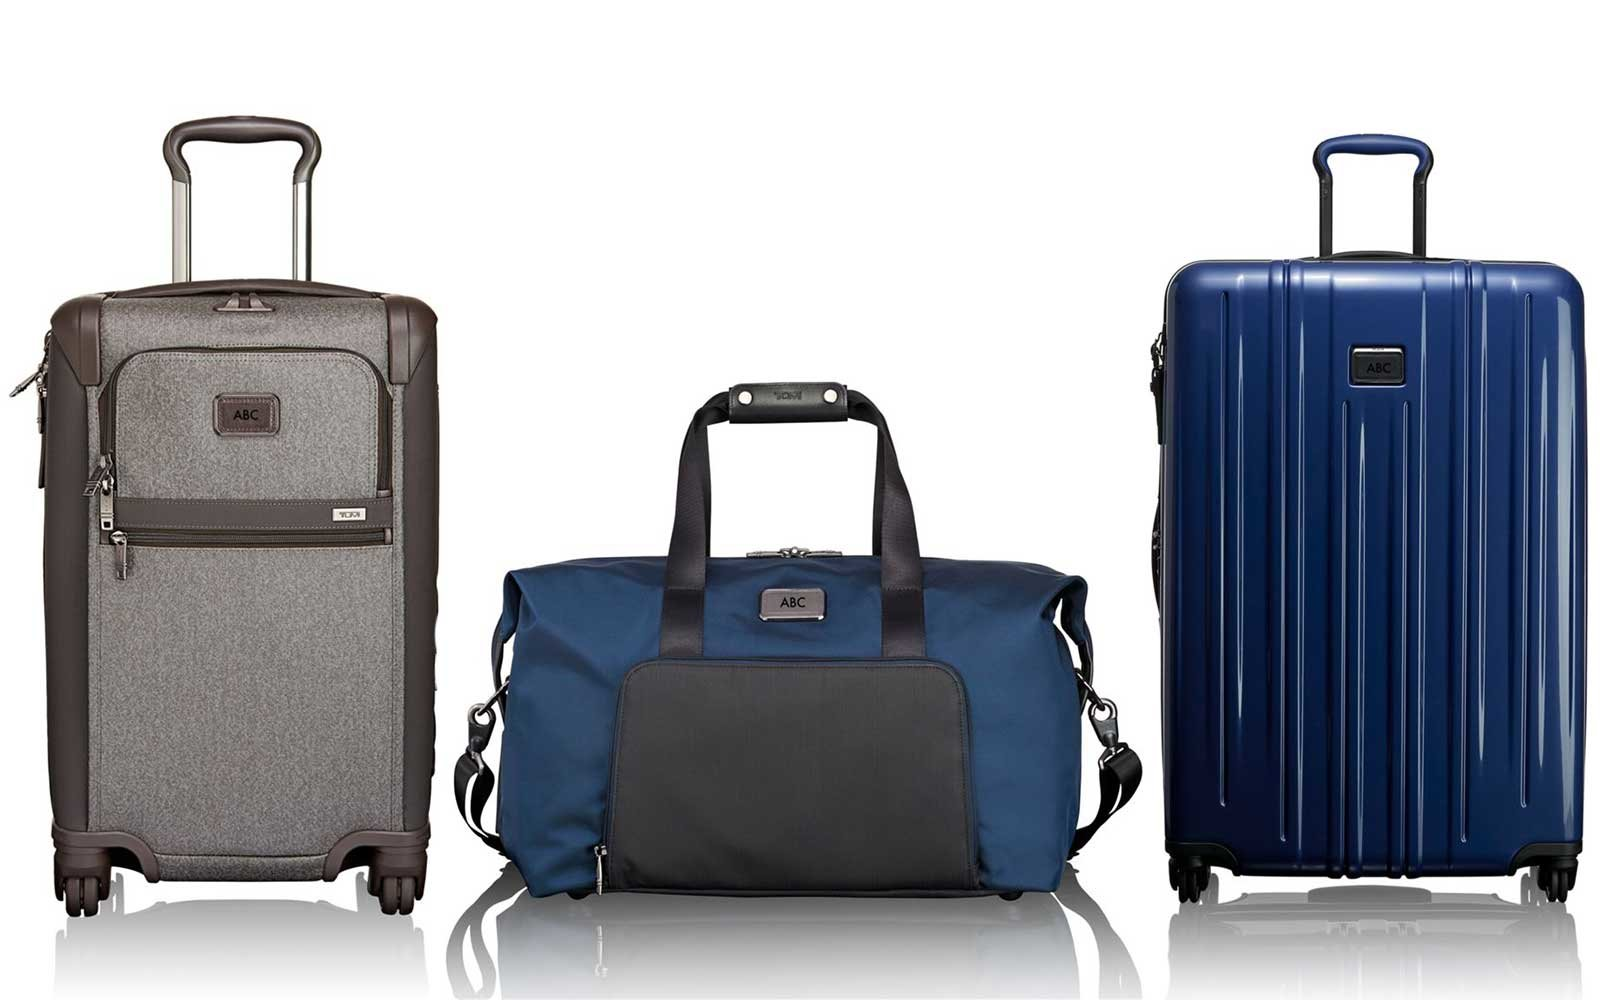 The Best Luggage Brands For Every Budget The Best Luggage Brands For Every Budget new picture